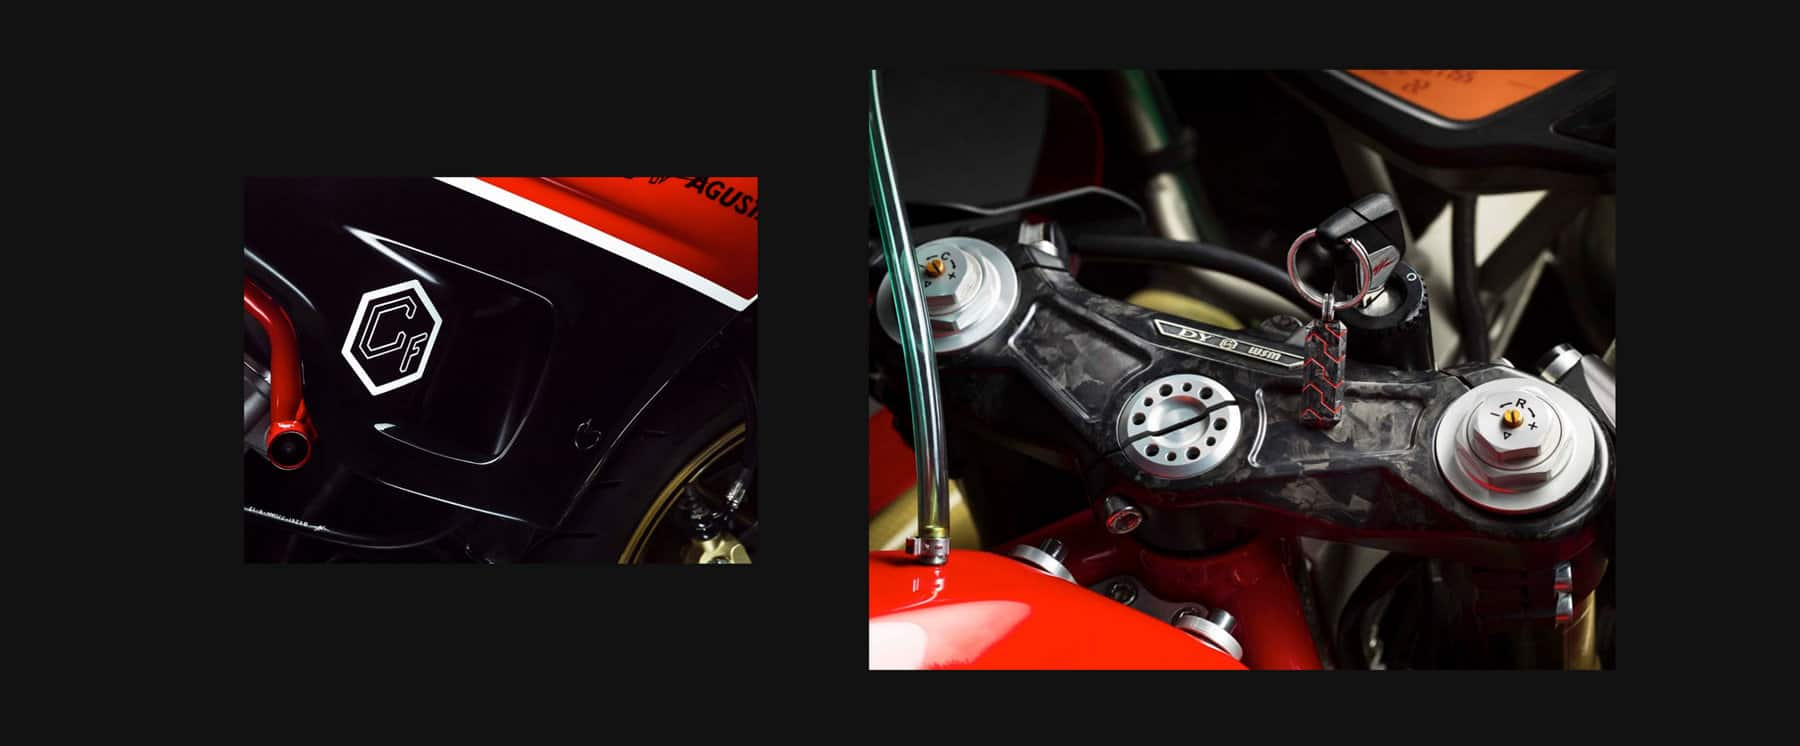 Color photographs showing the Forged Carbon Collection hallmark and the forged carbon triple tree components of the David Yurman Forged Carbon MV Moto by Agusta.